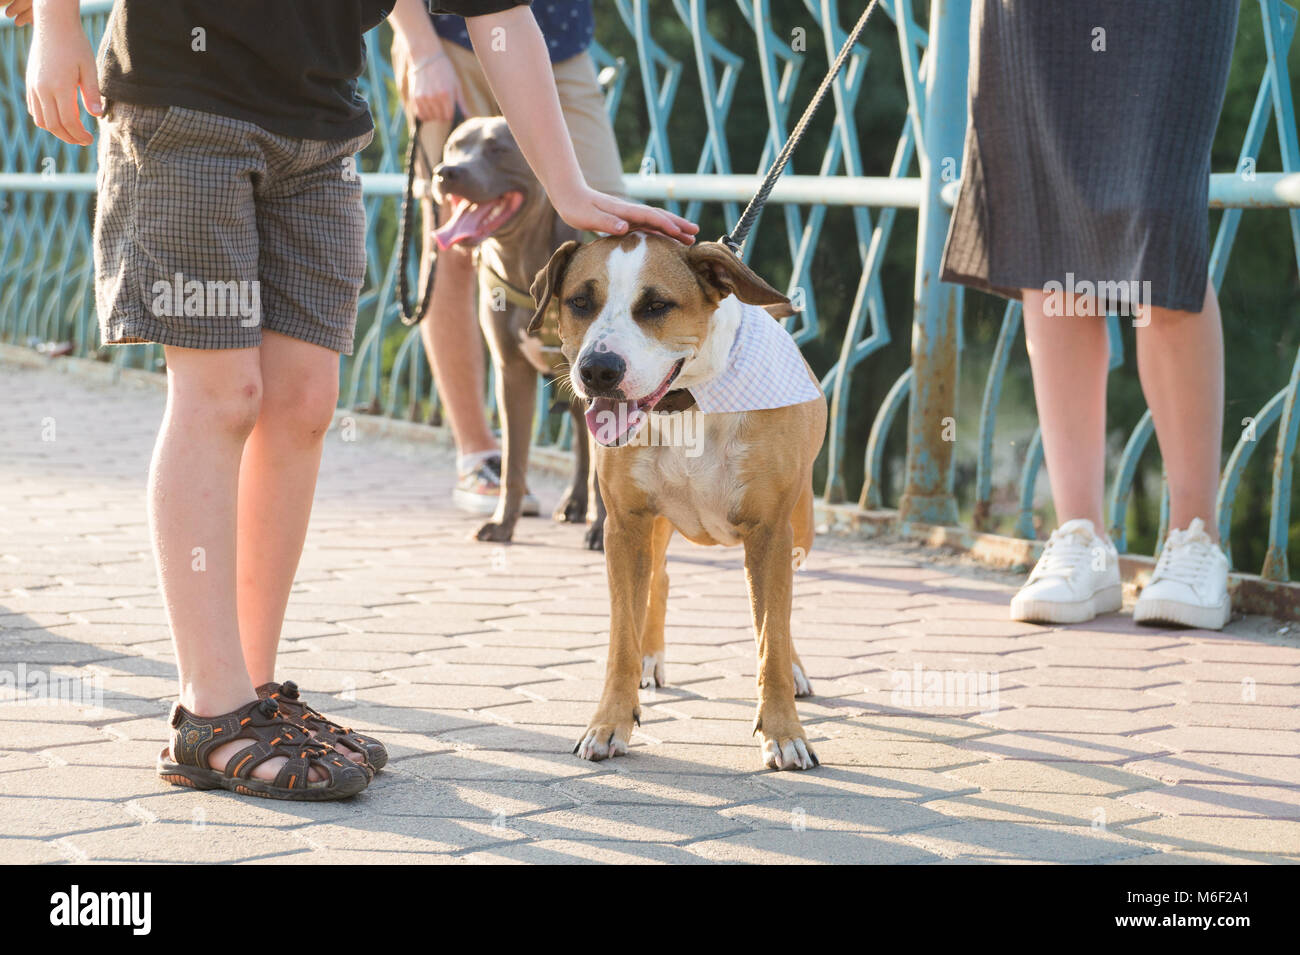 Child pats socialized dog in the park on a sunny day - Stock Image